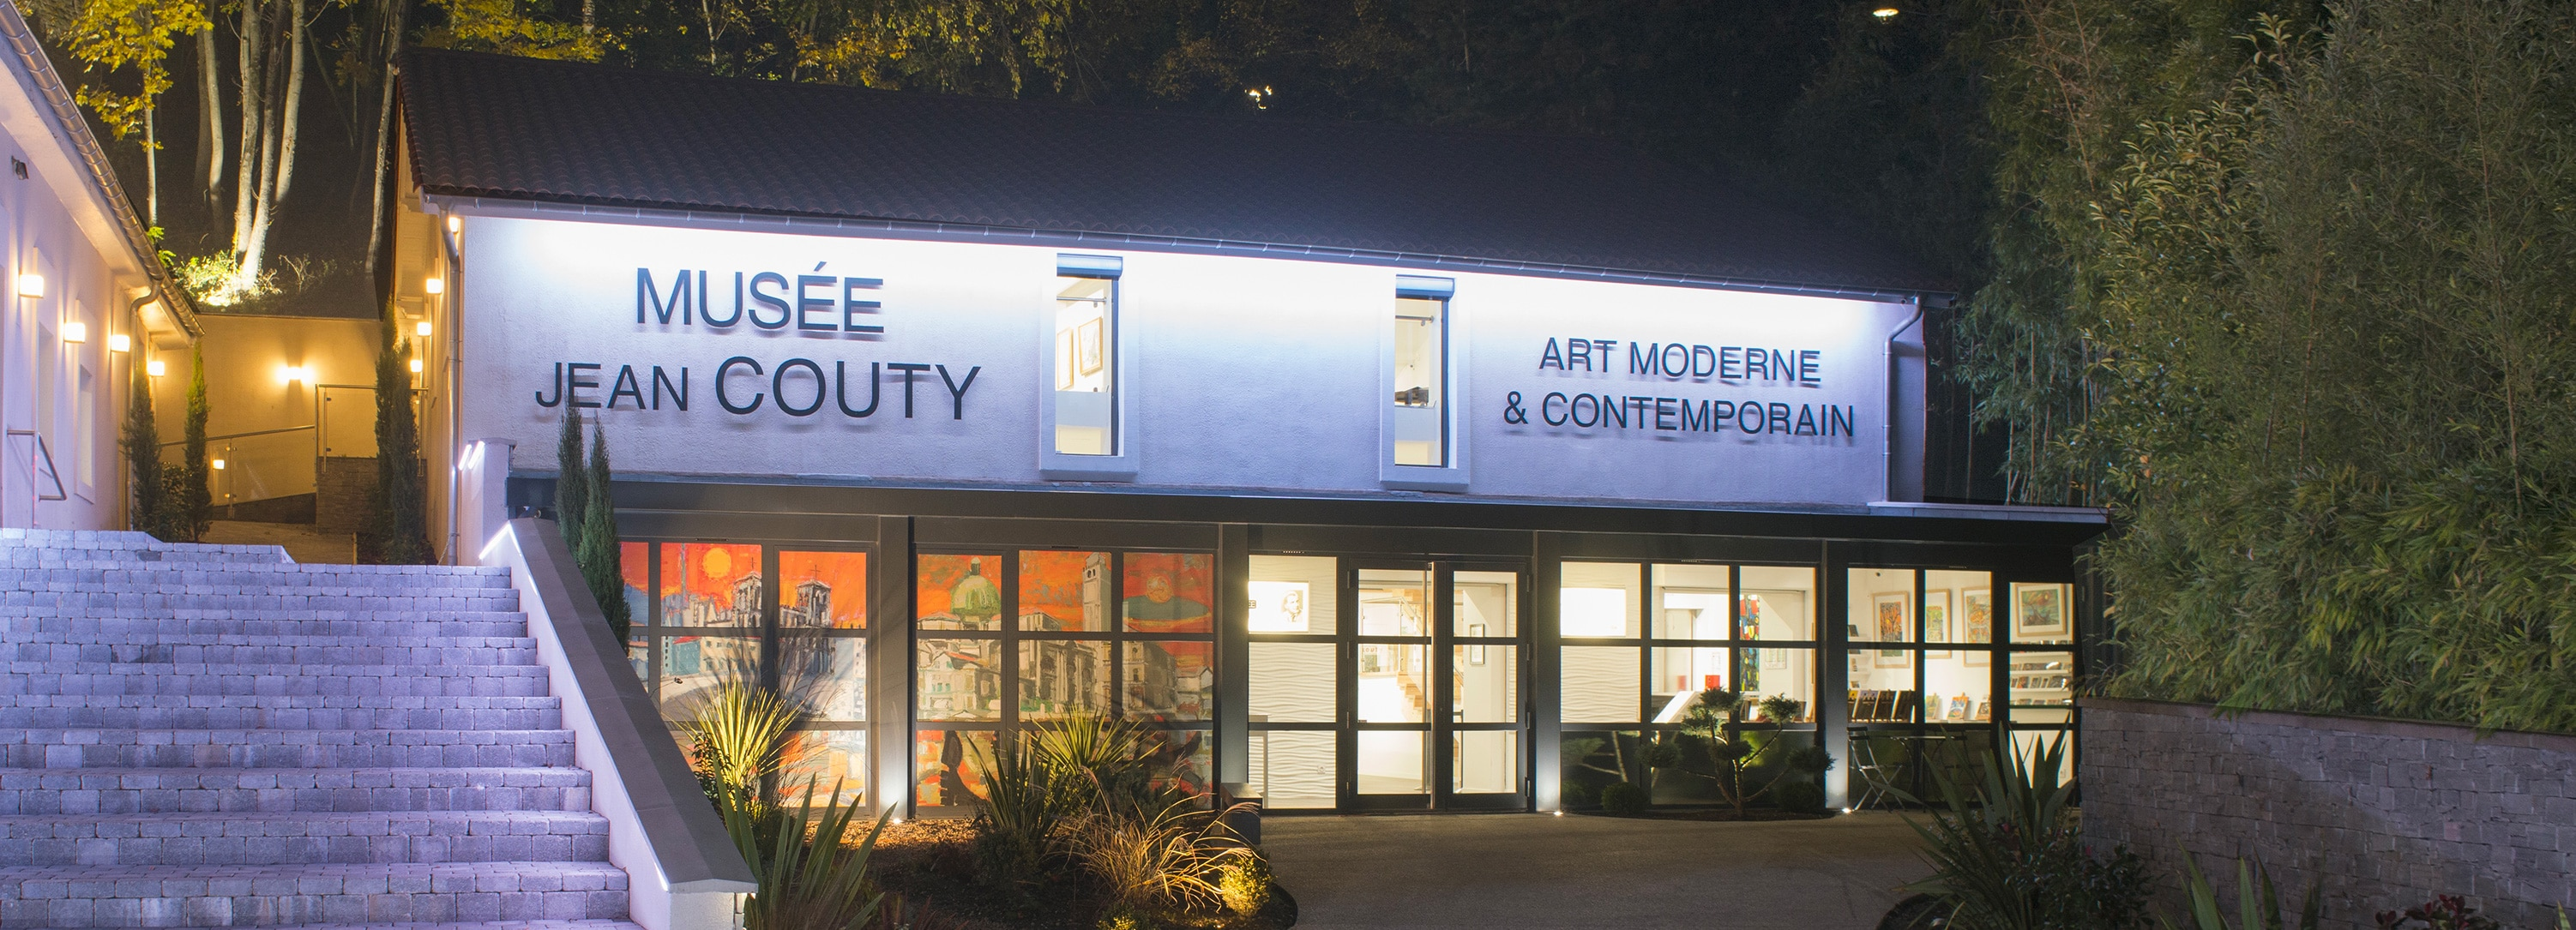 Museejeancouty Artmodernecontemportain